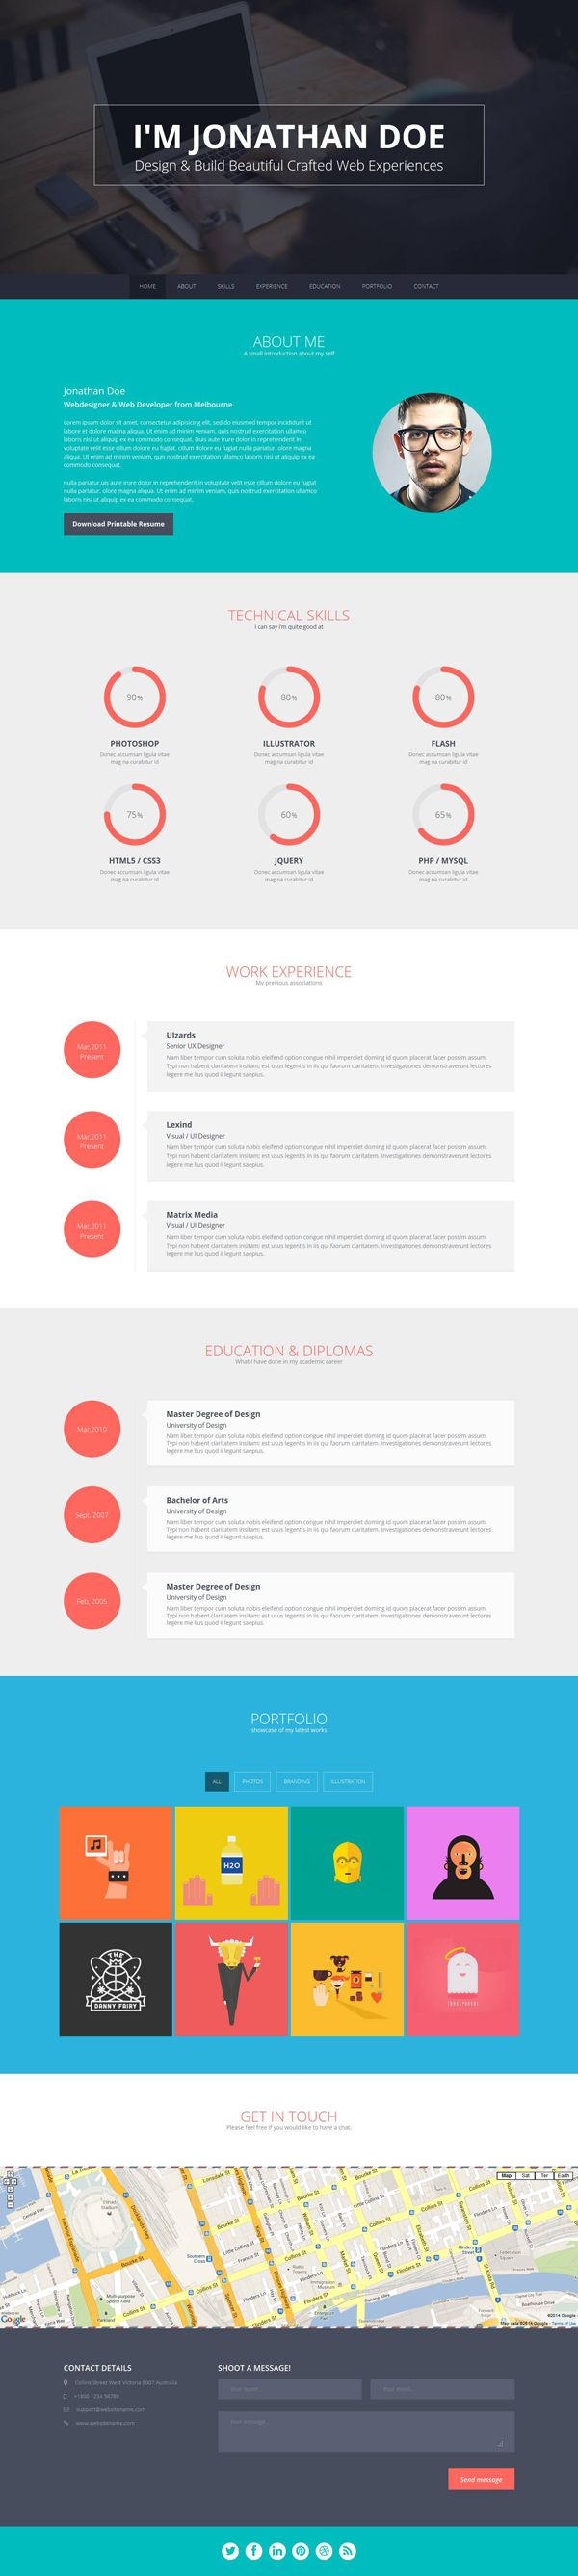 best ideas about online resume template themeelite send a special gift for our psdblast gang if you are planning to create or update your online resume in this new year here you